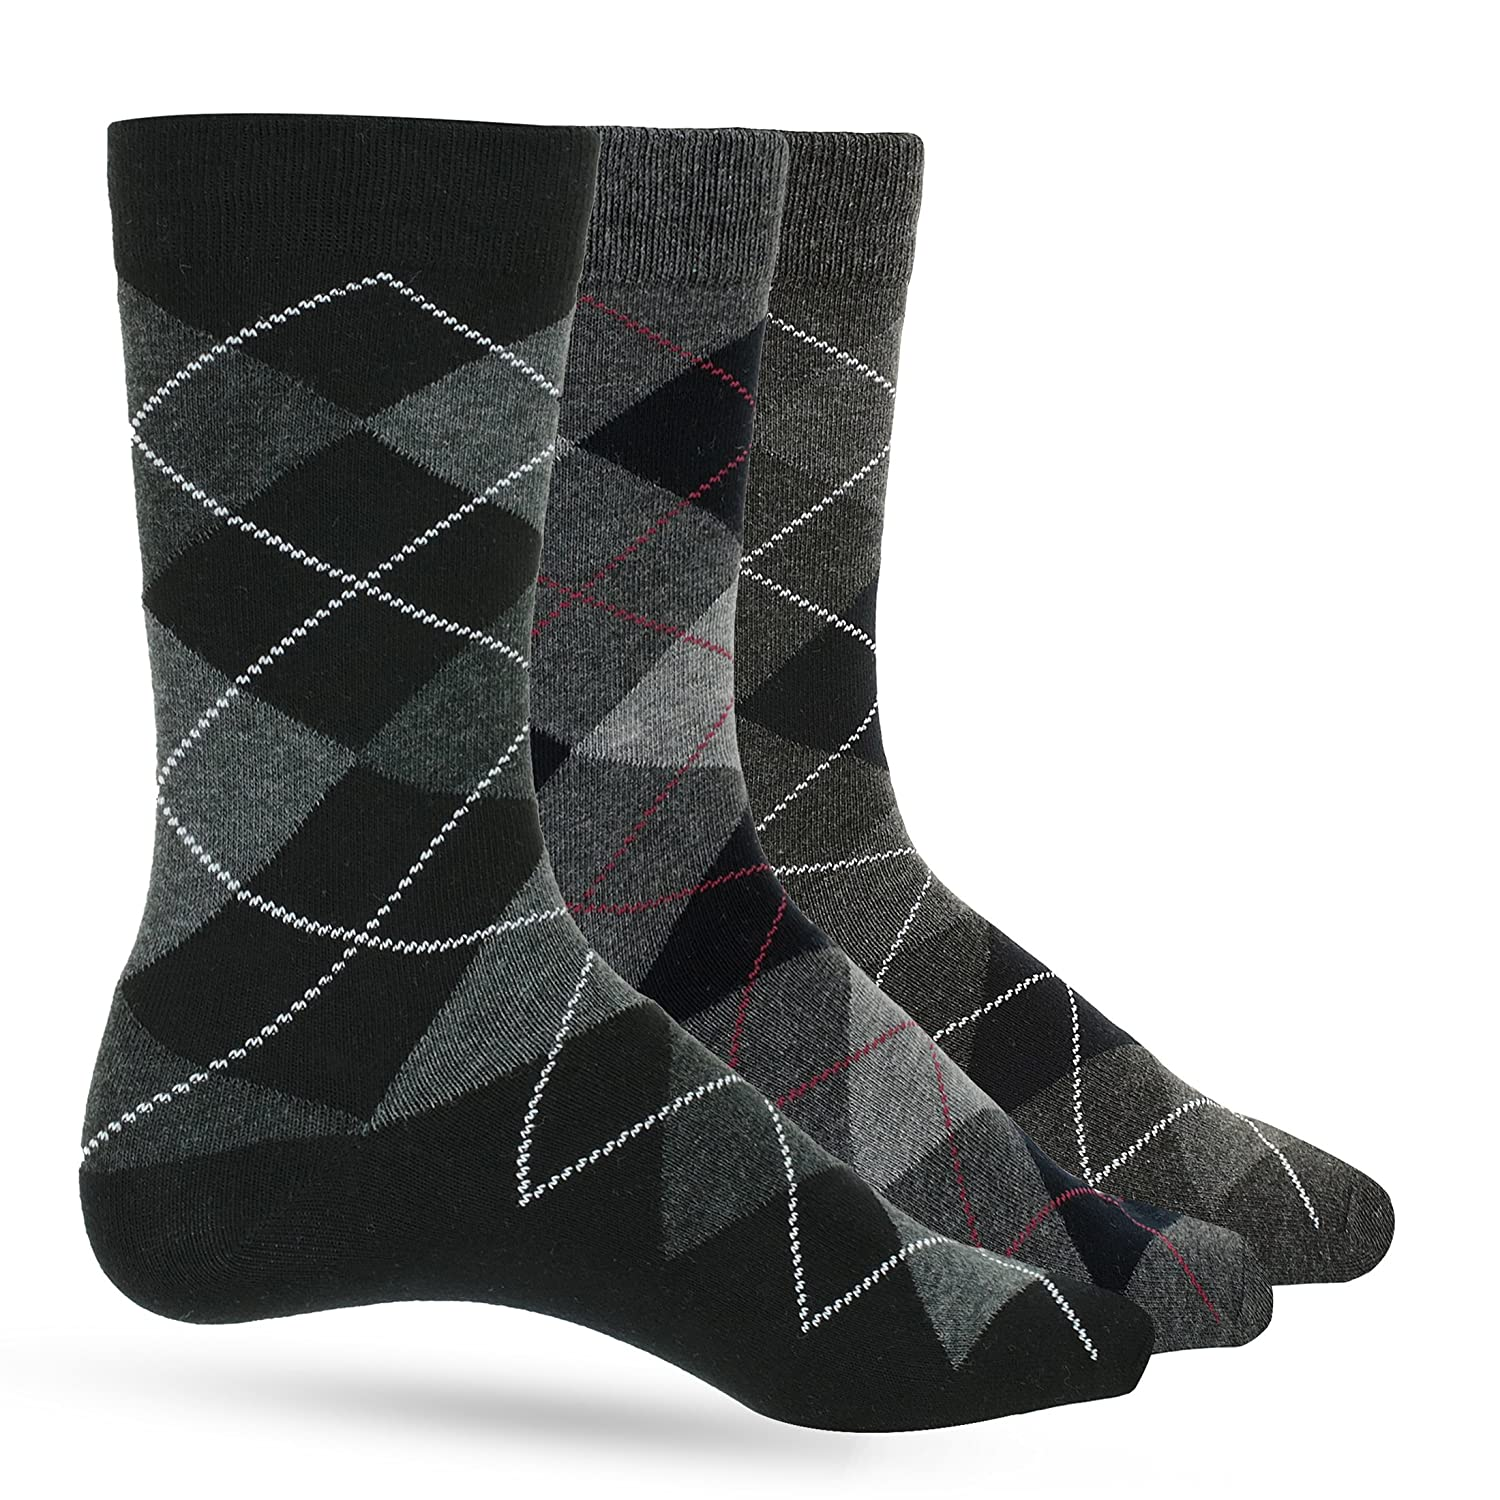 45680f668bcd PREMIUM MENS ARGYLE DRESS SOCKS are a classic favorite. They are soft,  thick, very fashionable, and make your feet feel wonderful. They go well  with jeans, ...